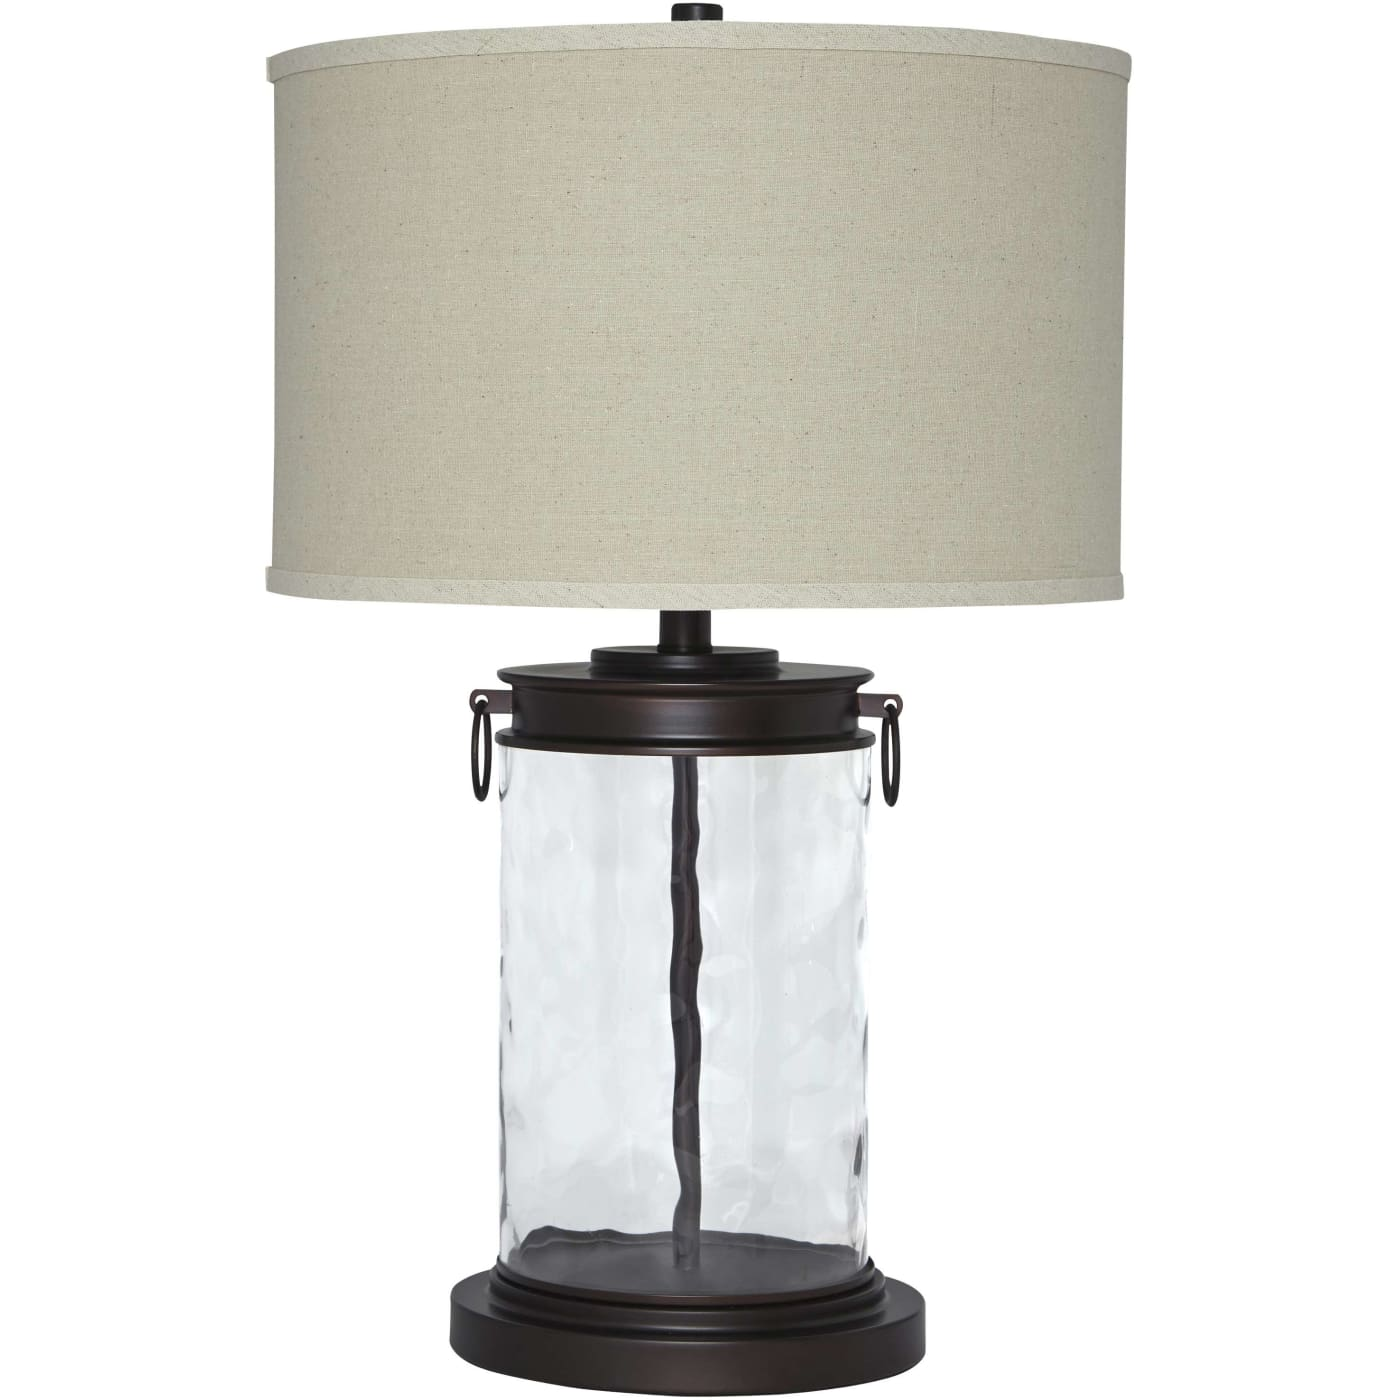 L430324 By Signature Design By Ashley Lamps Goedekers Com